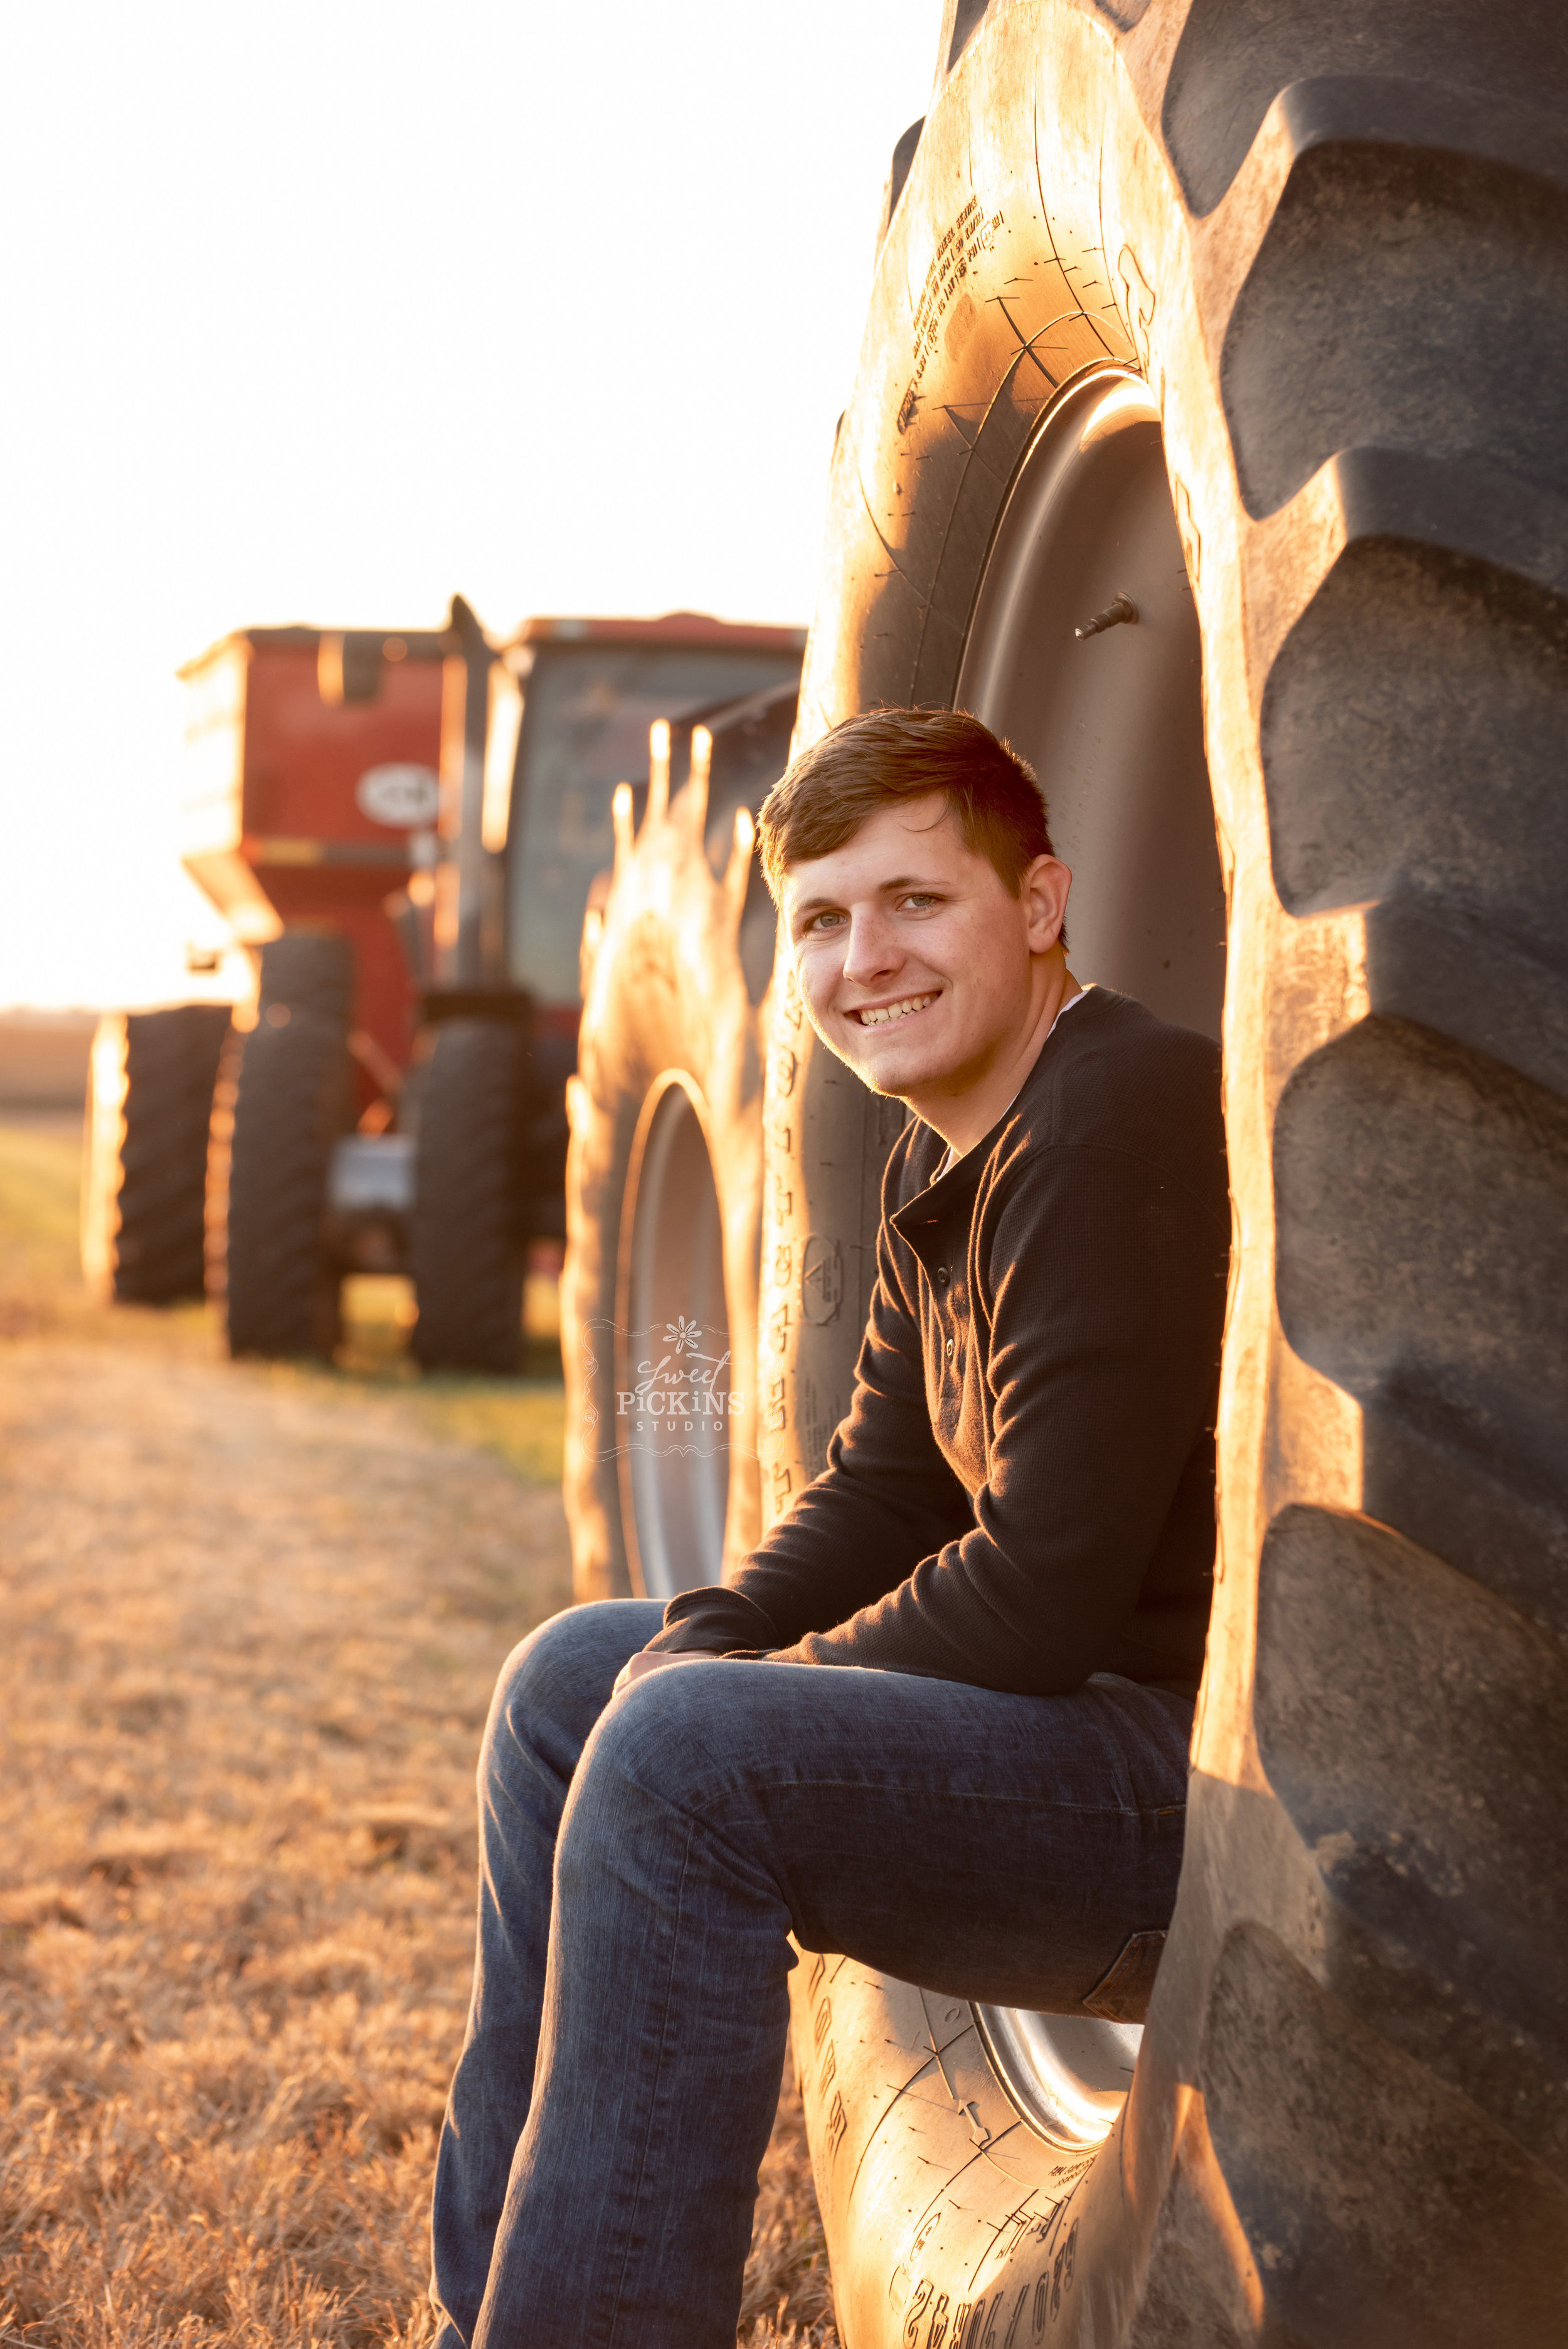 Peru, IN Senior Portrait Photographer | Farm Field with Golden Hour Sunset Light, Farm Guy with Case IH Tractor and Combine Equipment